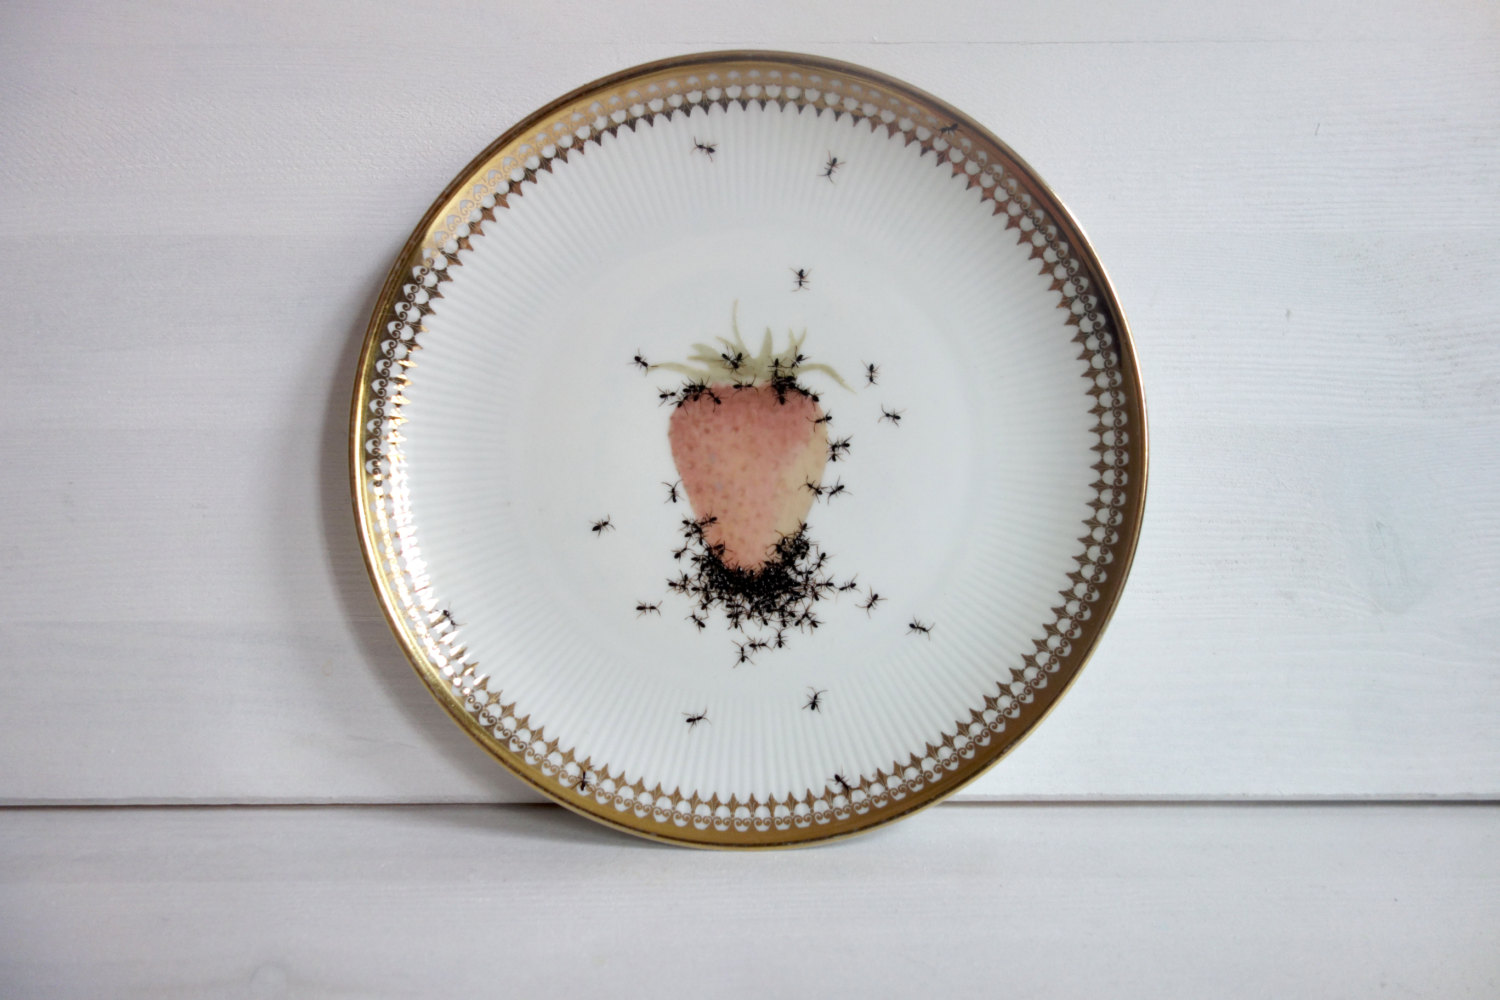 Plate 2 - Hand Painted Porcelain Plate by La Philie - Evelyn Bracklow & Hand-Painted Ants on Vintage Porcelain Plates by La Philiearthaus